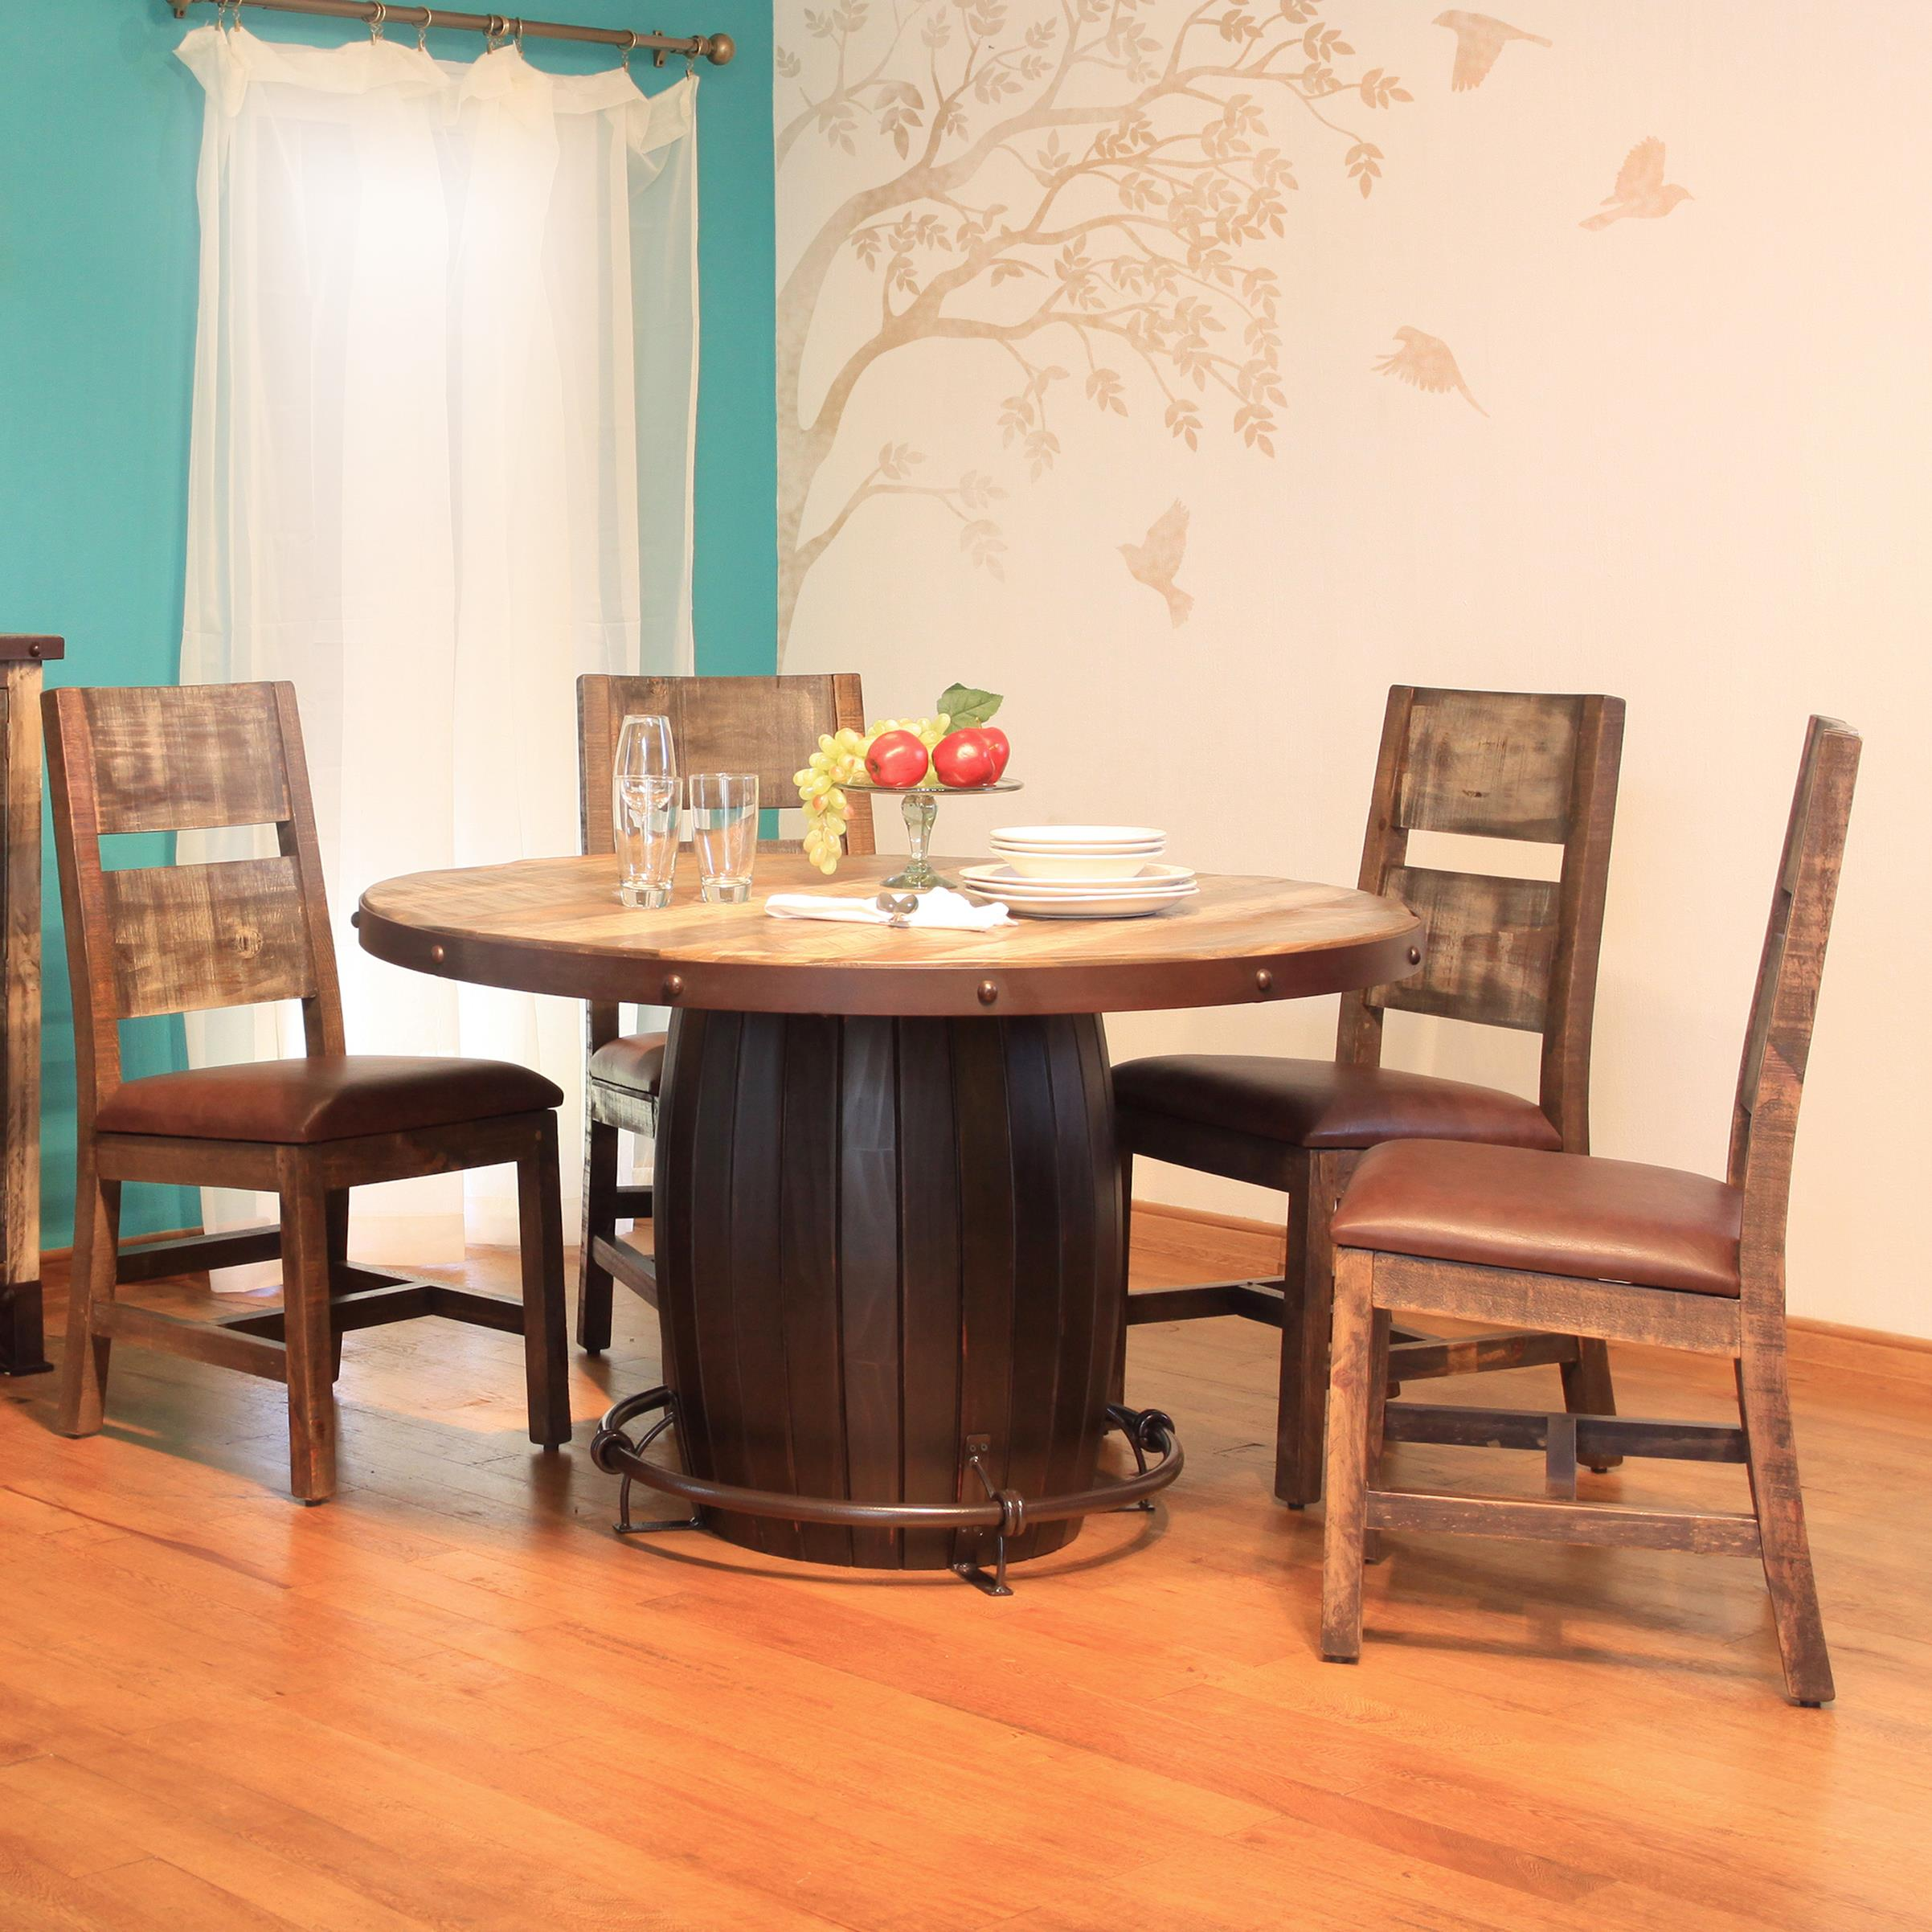 International Furniture Direct 900 Antique 5 Piece Dining Set - Item Number: IFD968TABLE-B+967TABLE-T+4xCHAIR-MC